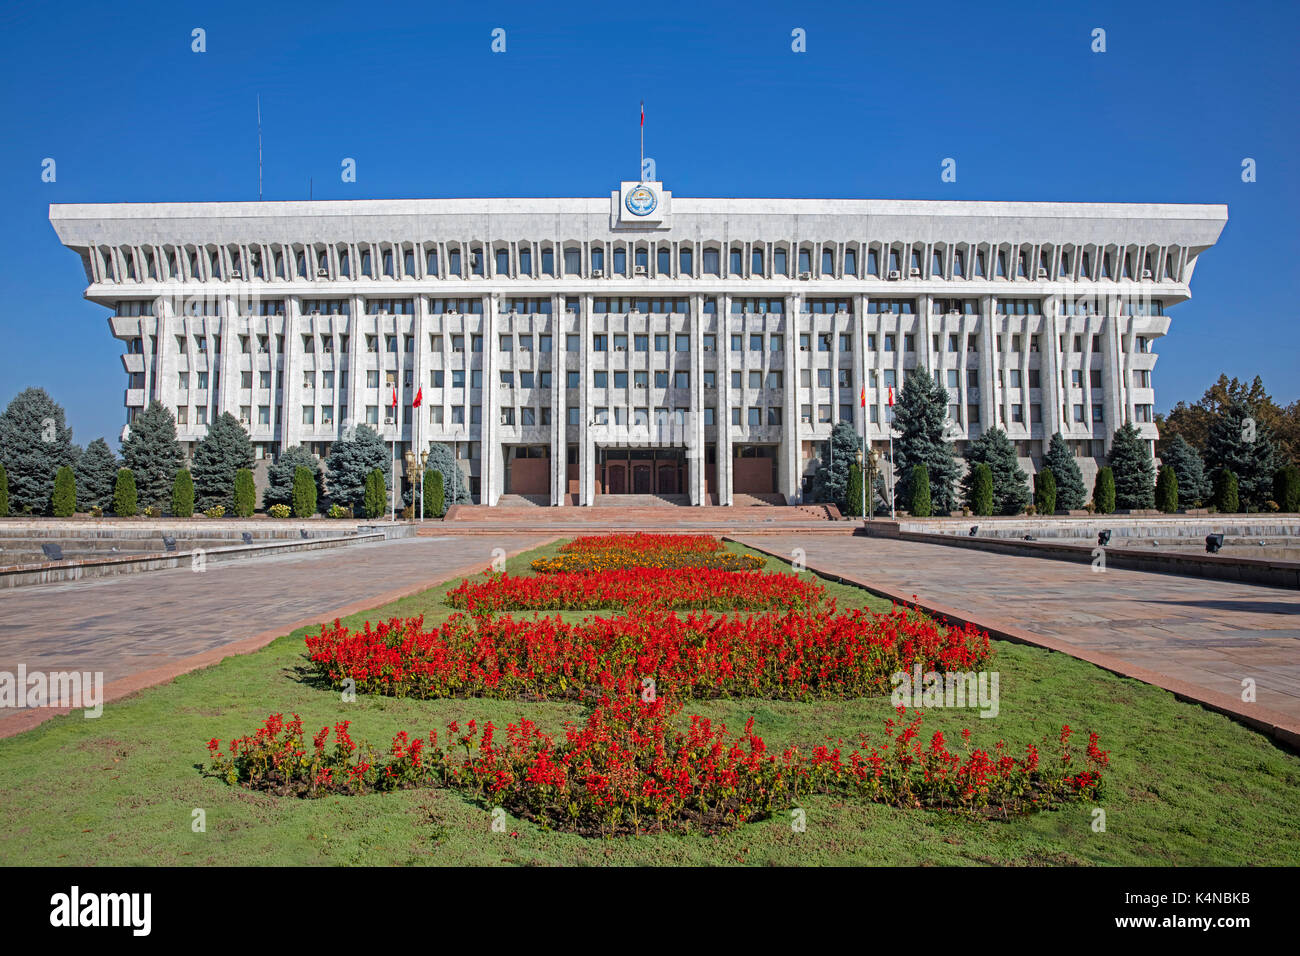 The White House, presidential office building built in Stalinist modern style in Bishkek, Kyrgyzstan - Stock Image